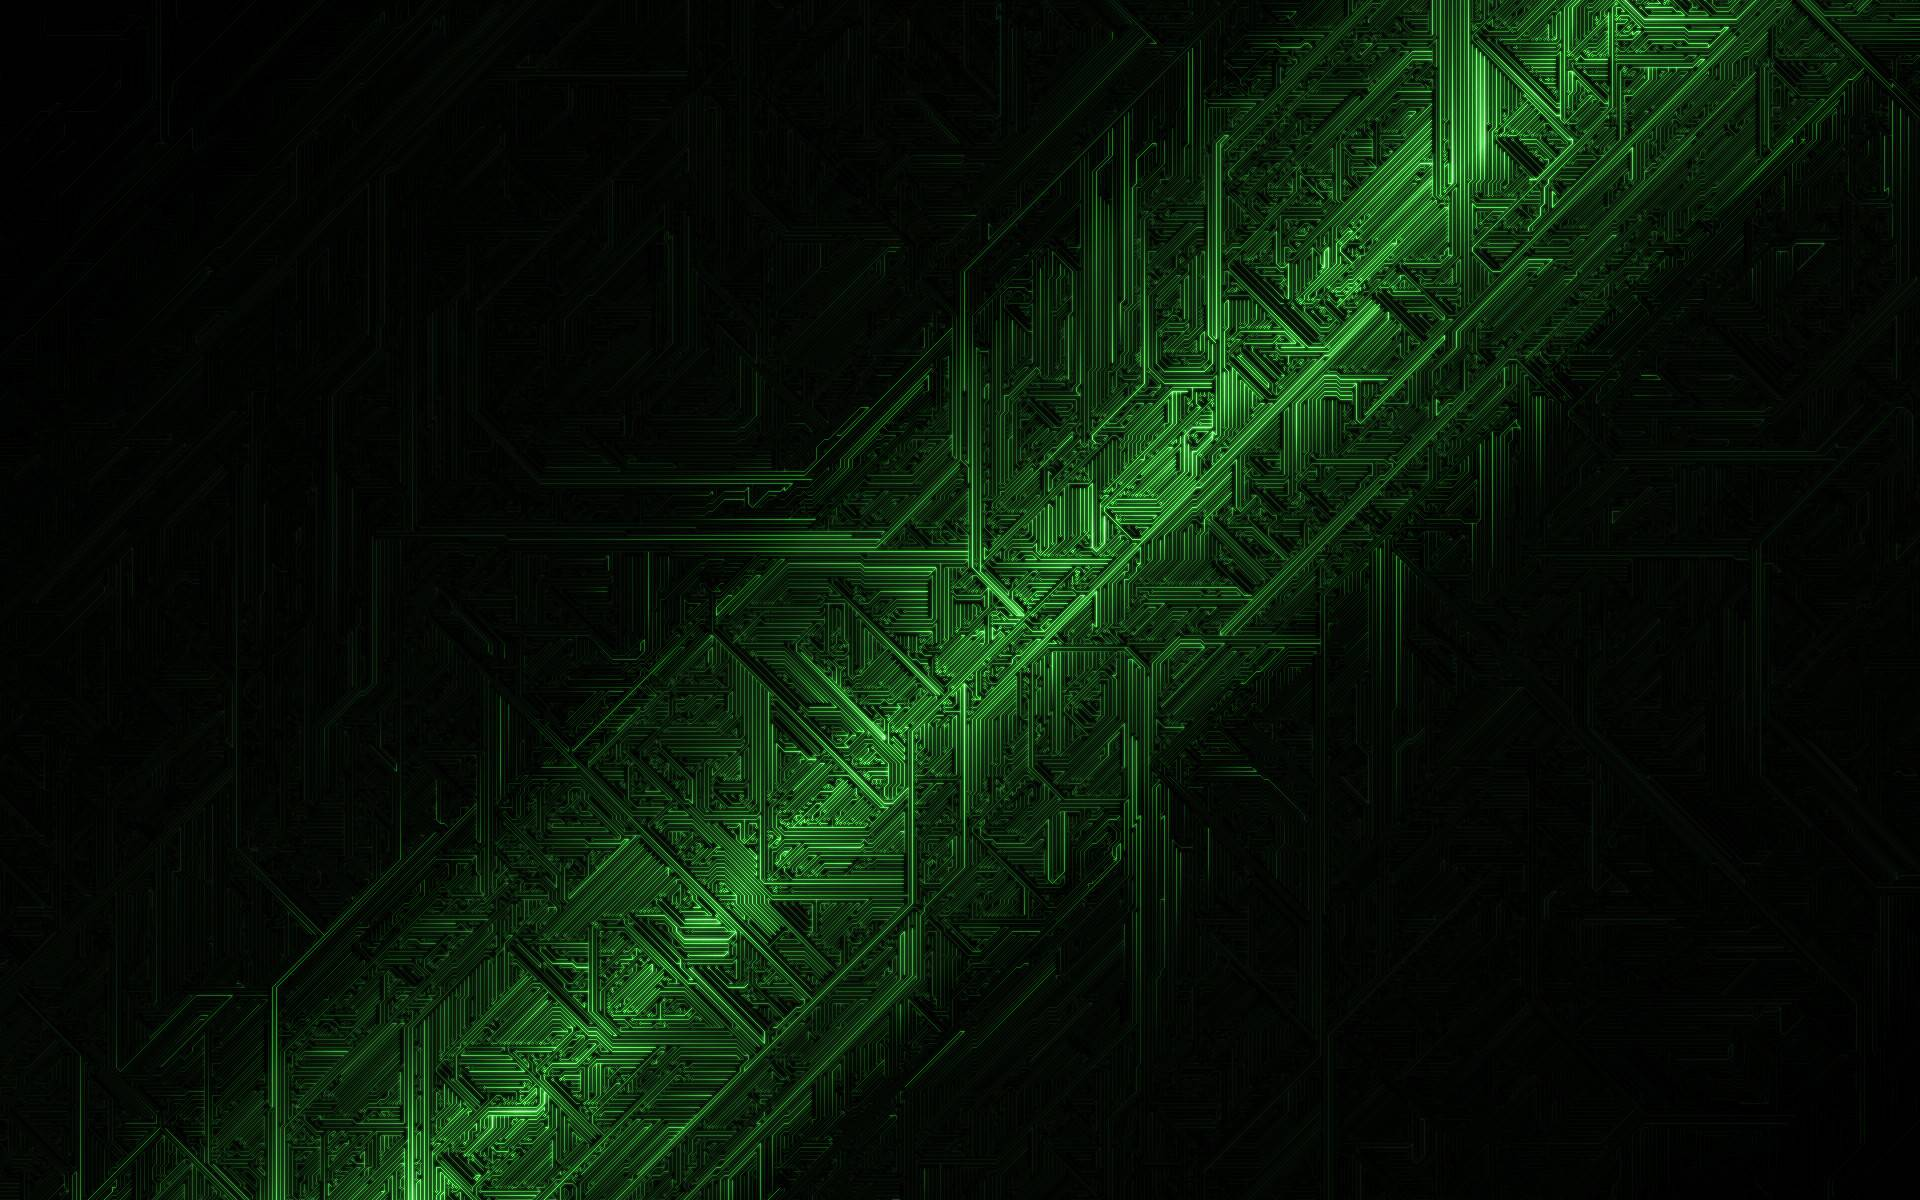 1920x1080 cool green stripes - photo #28